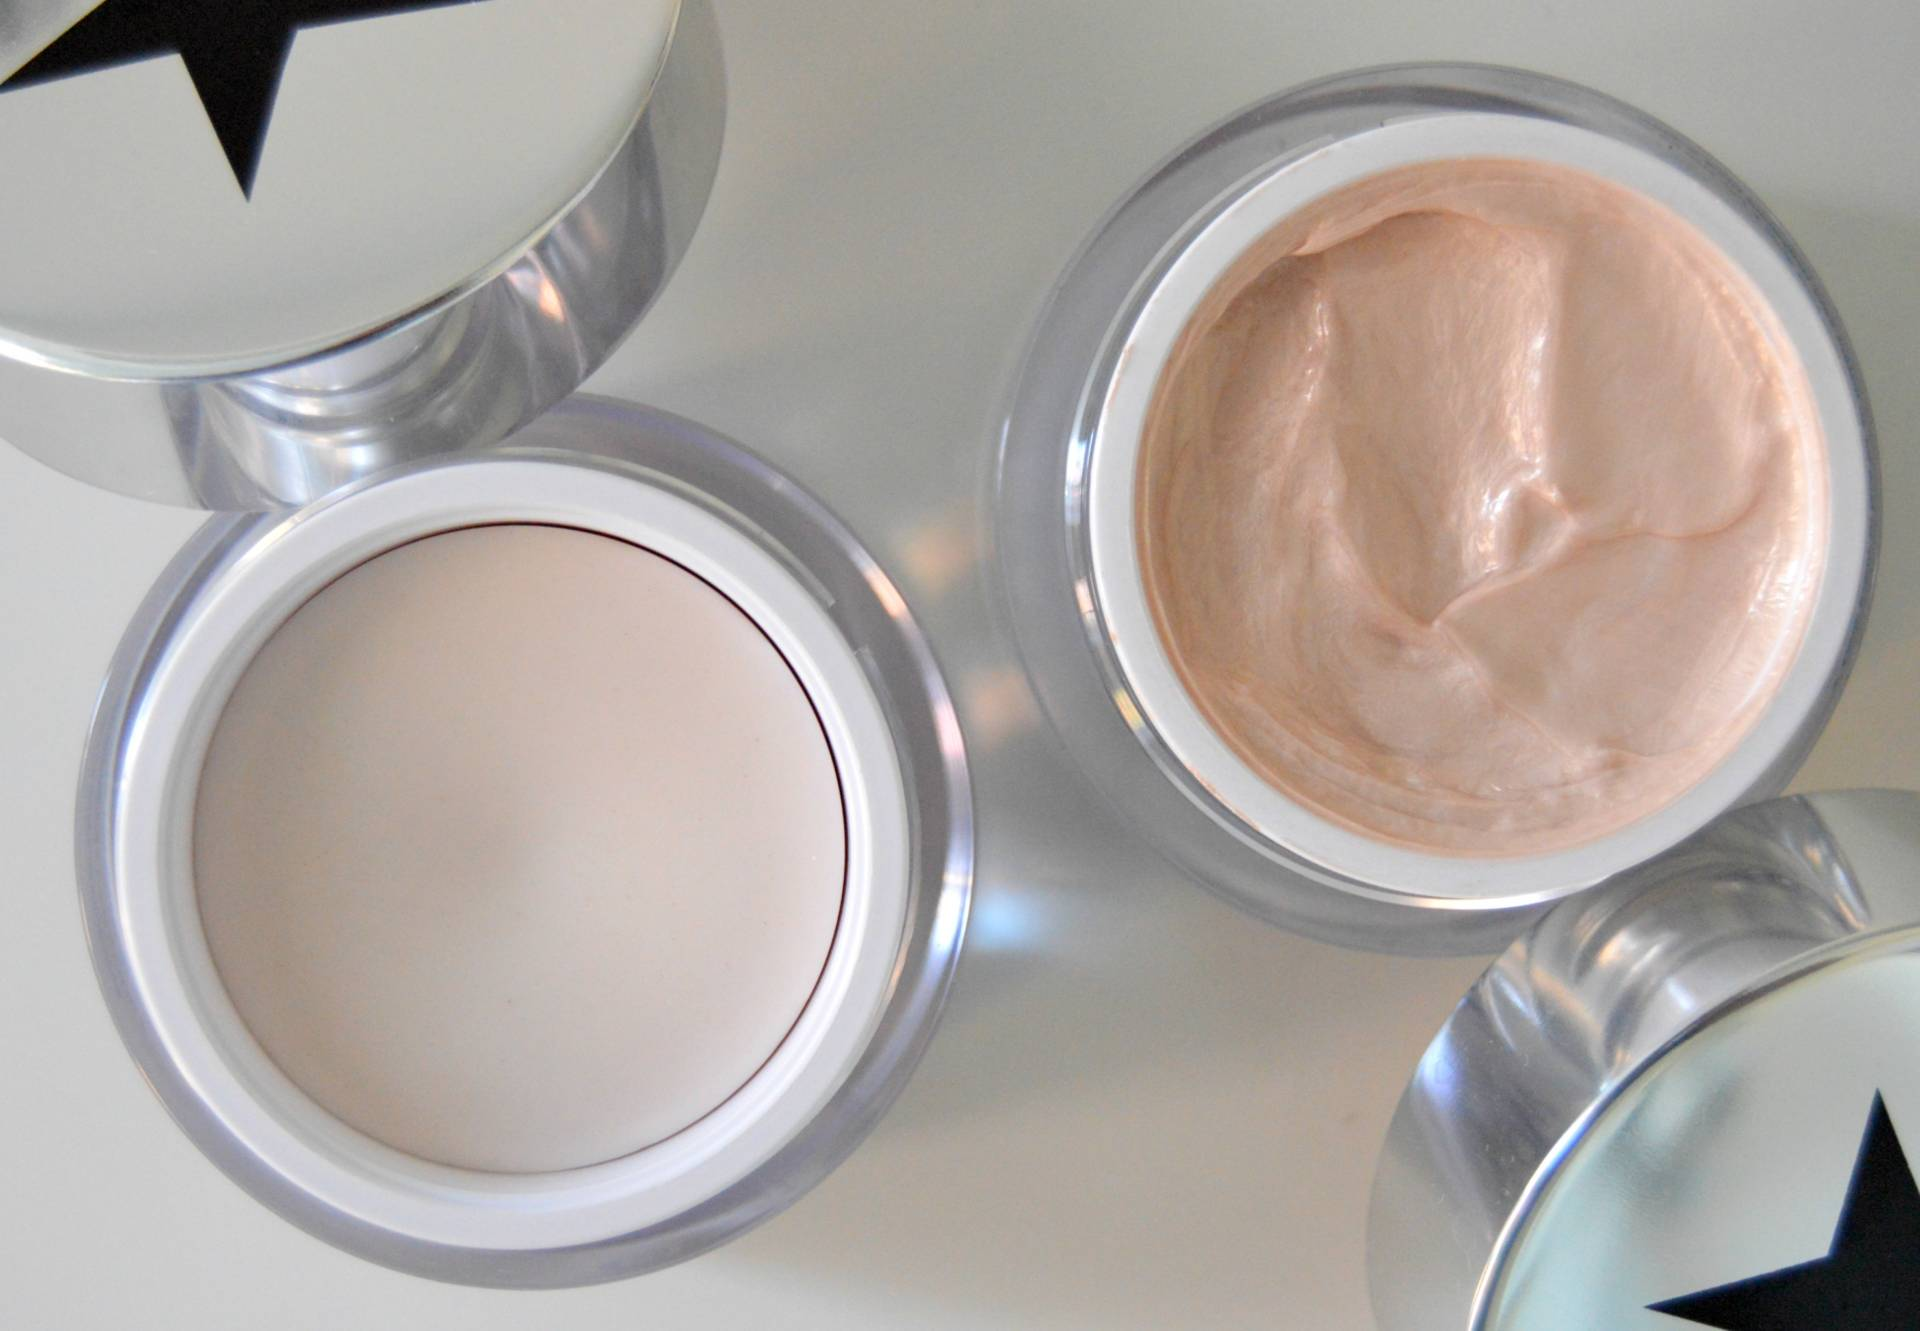 glamglow-volcasmic-glowstarter-side-by-side-review-inhautepursuit